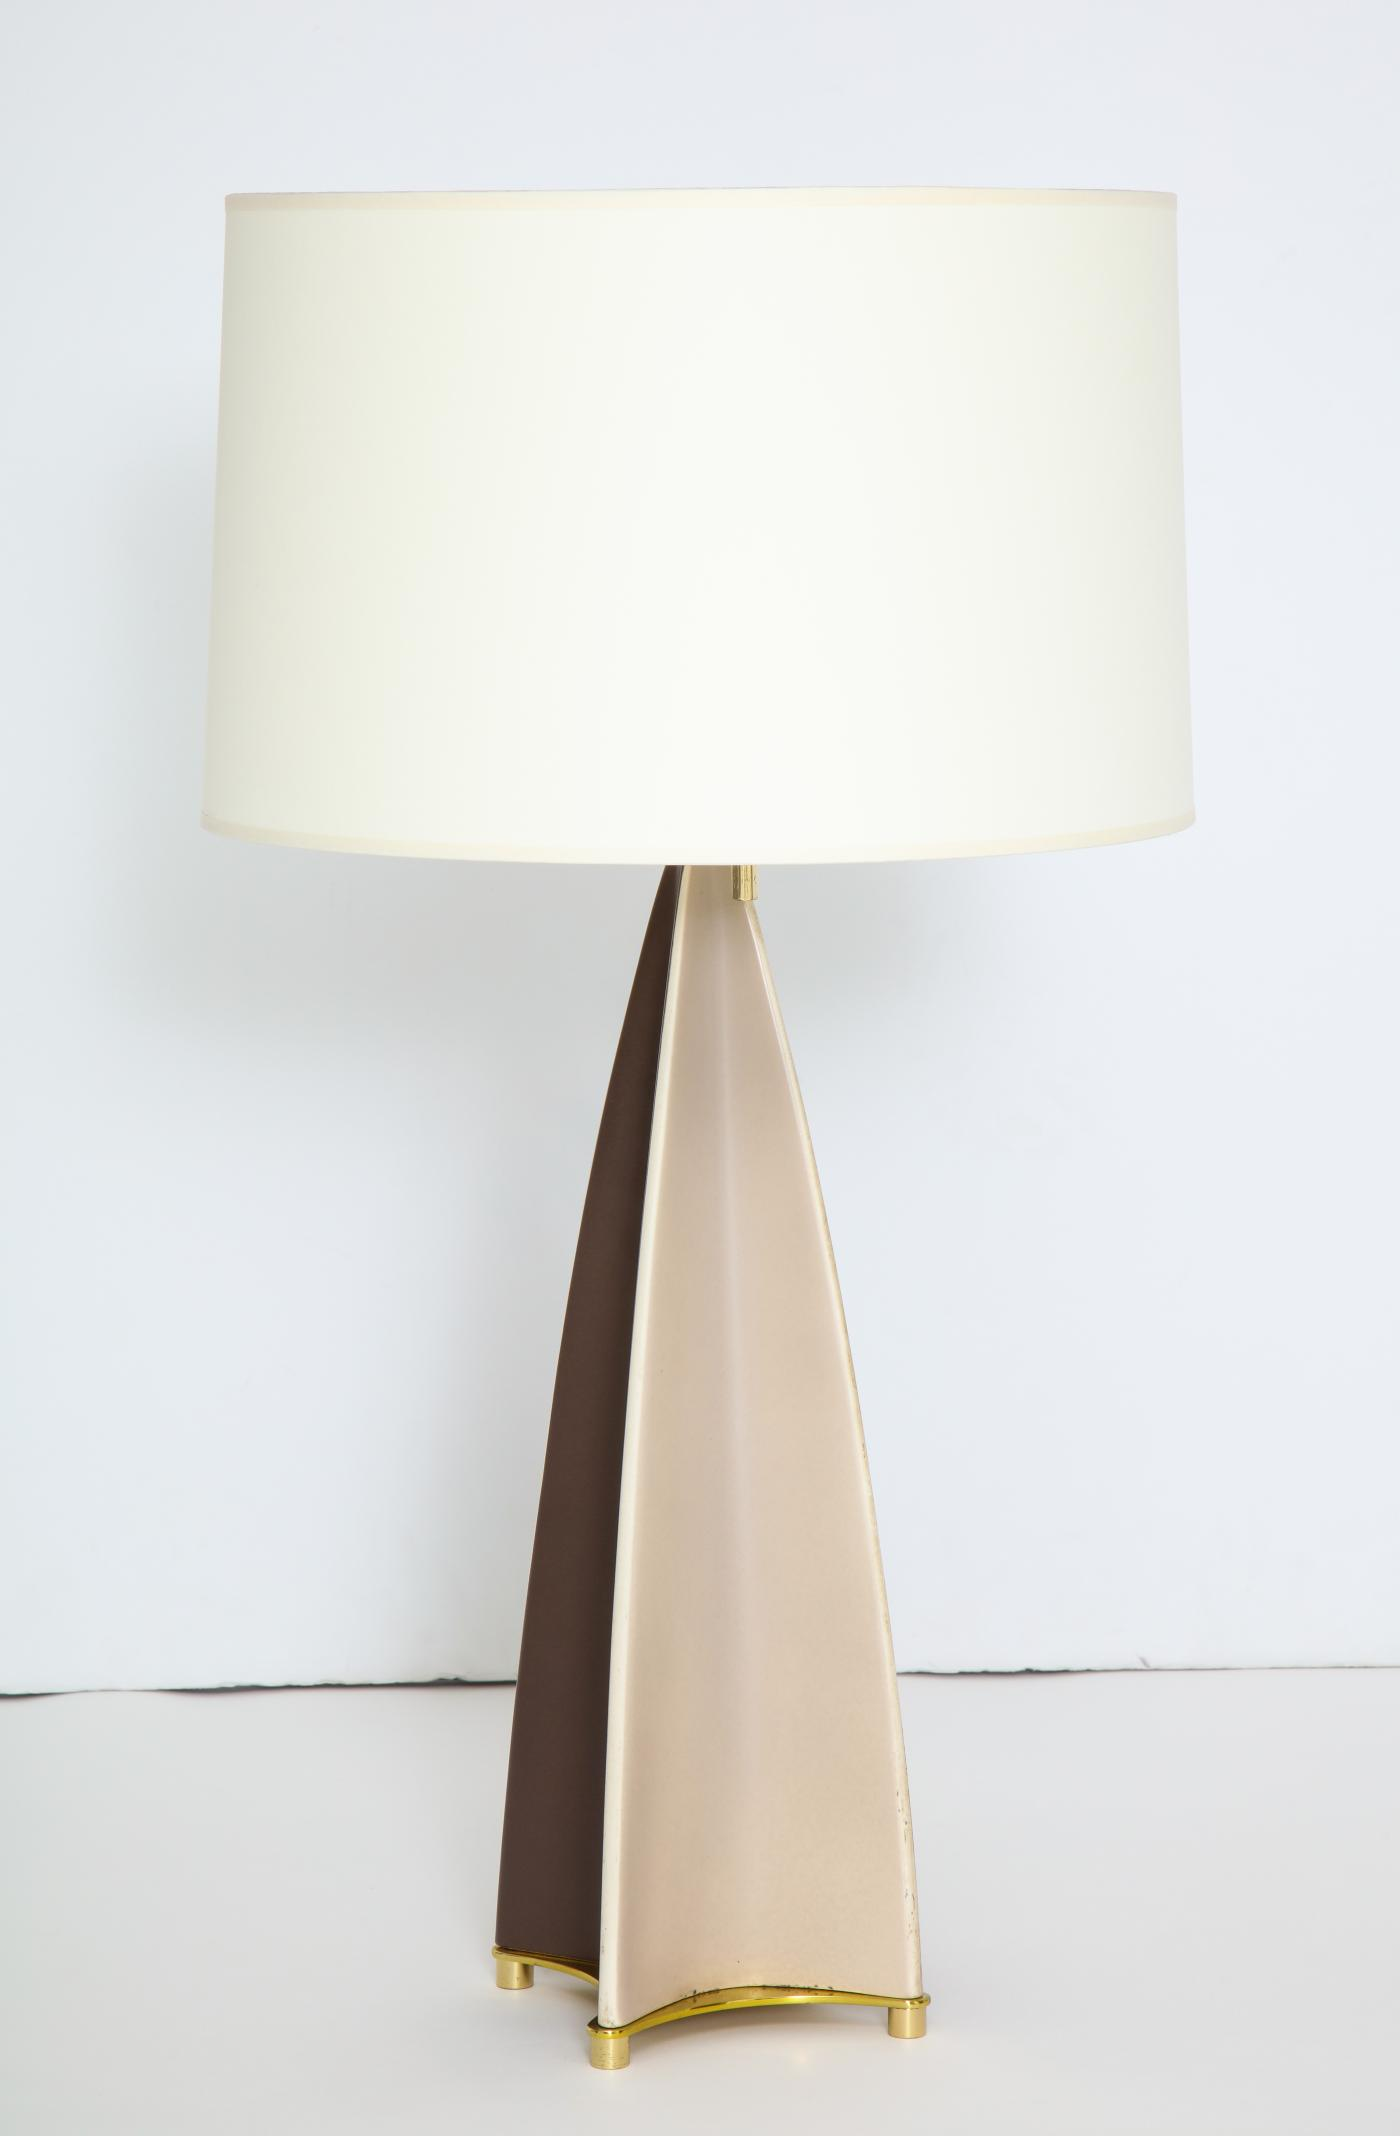 Parabolic Fin Table lamp by Gerald Thurston for Lightolier.